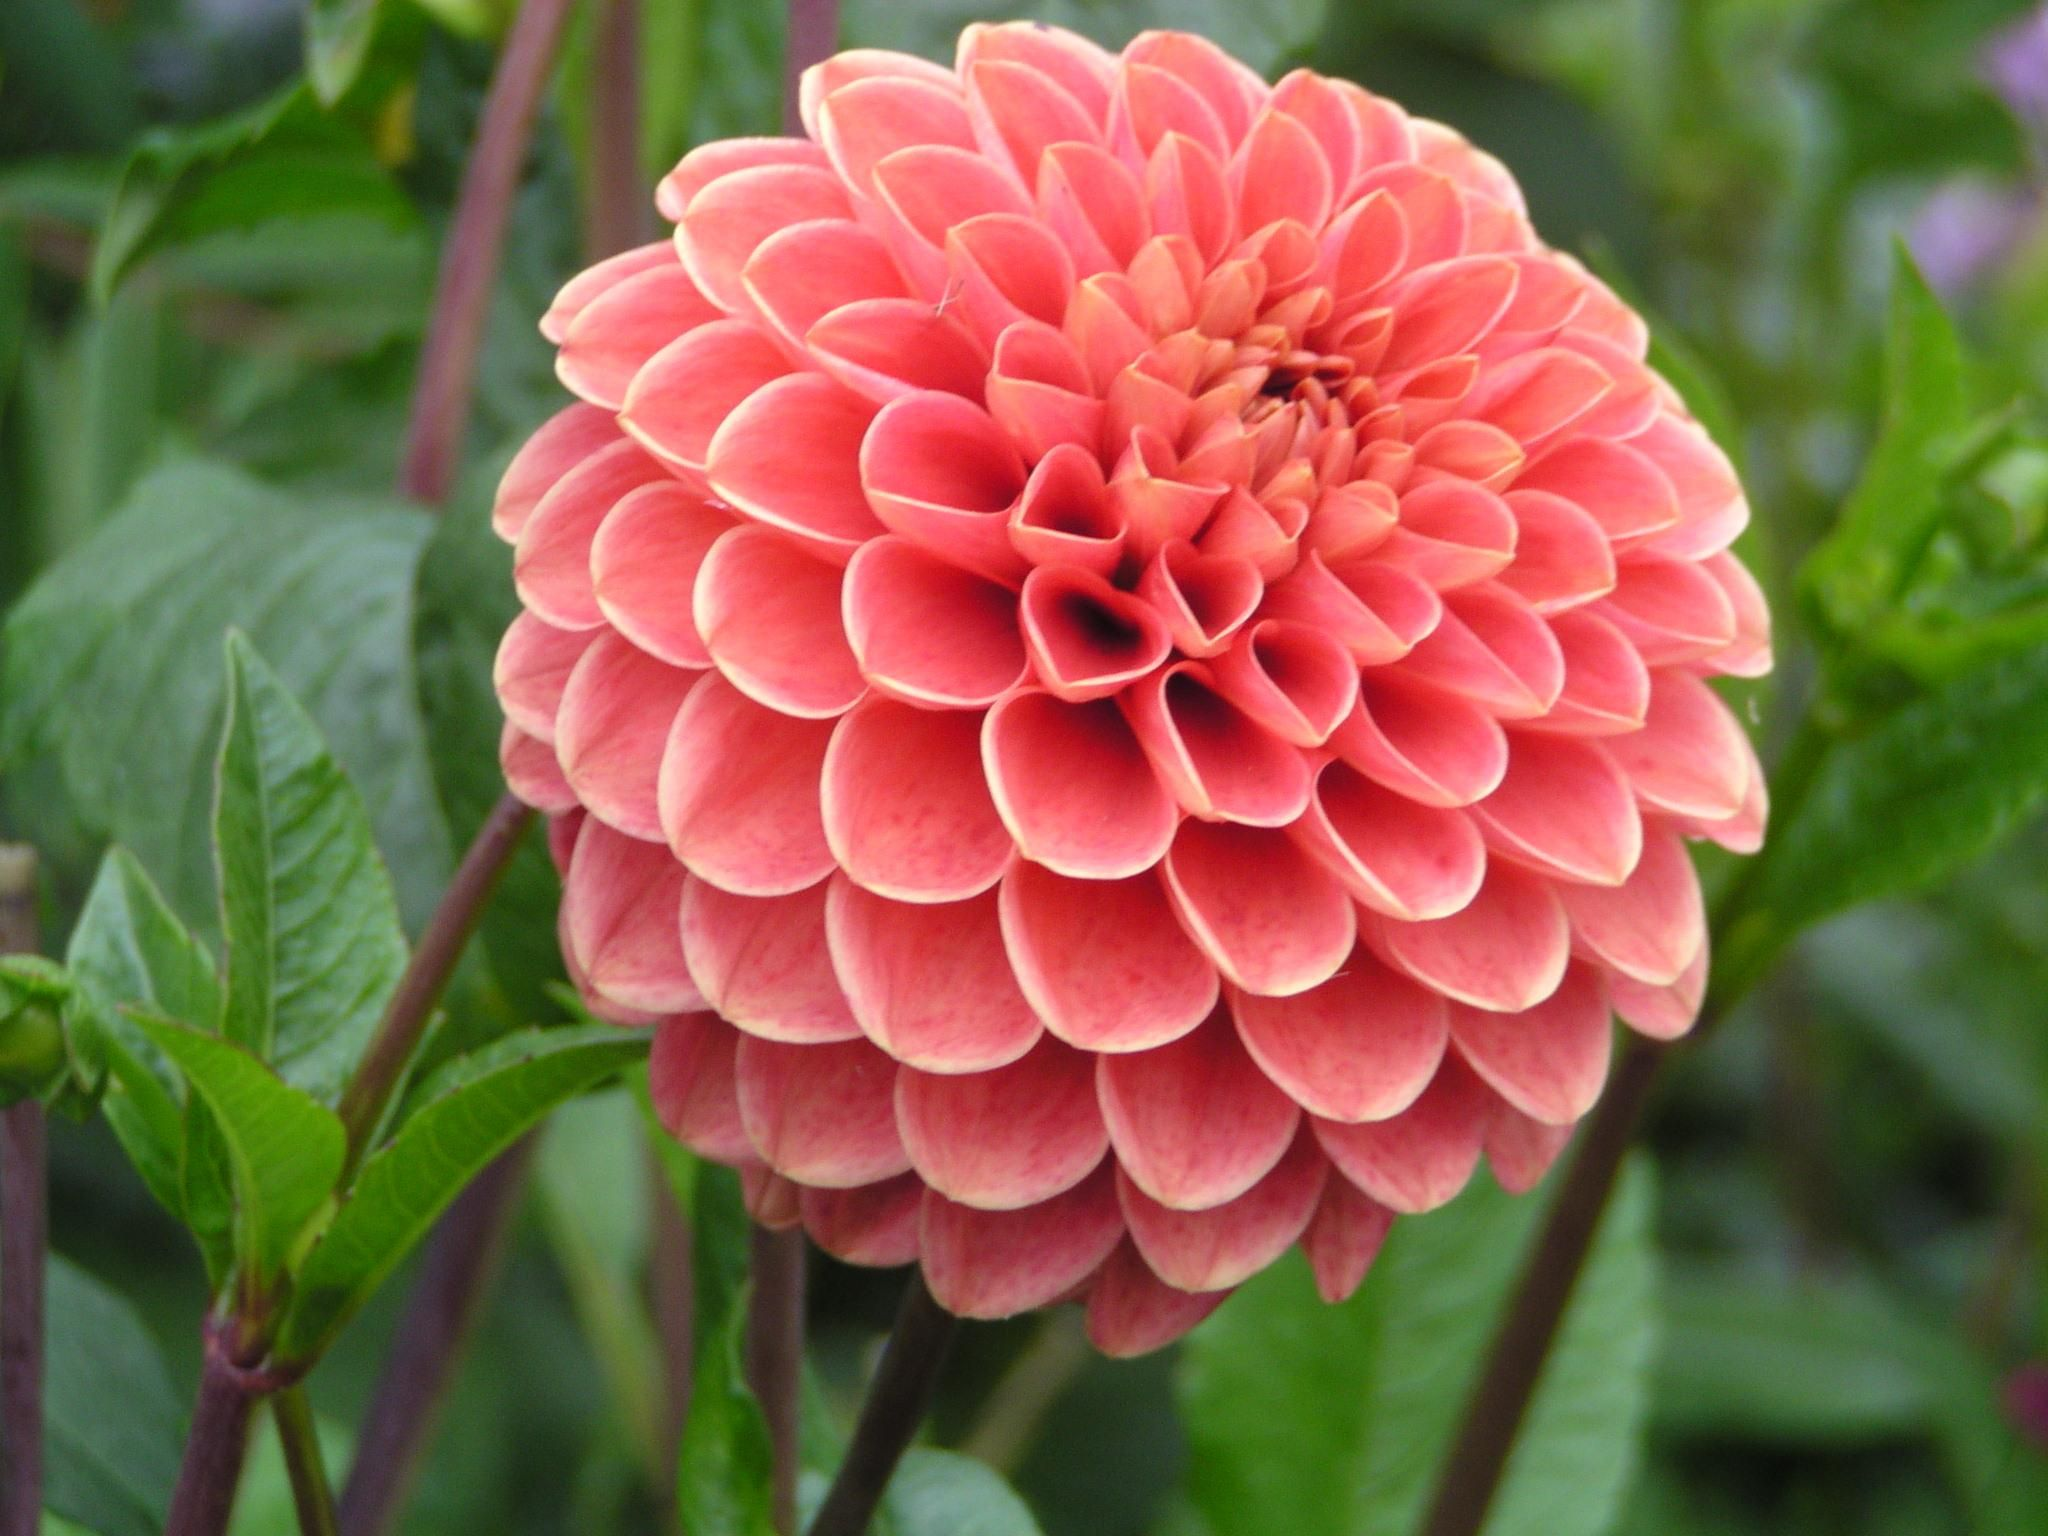 Jomanda ball dahlia fleurs pinterest flowers dahlia and dahlia dahlia flower cant be missed if we are counting most beautiful flowers in izmirmasajfo